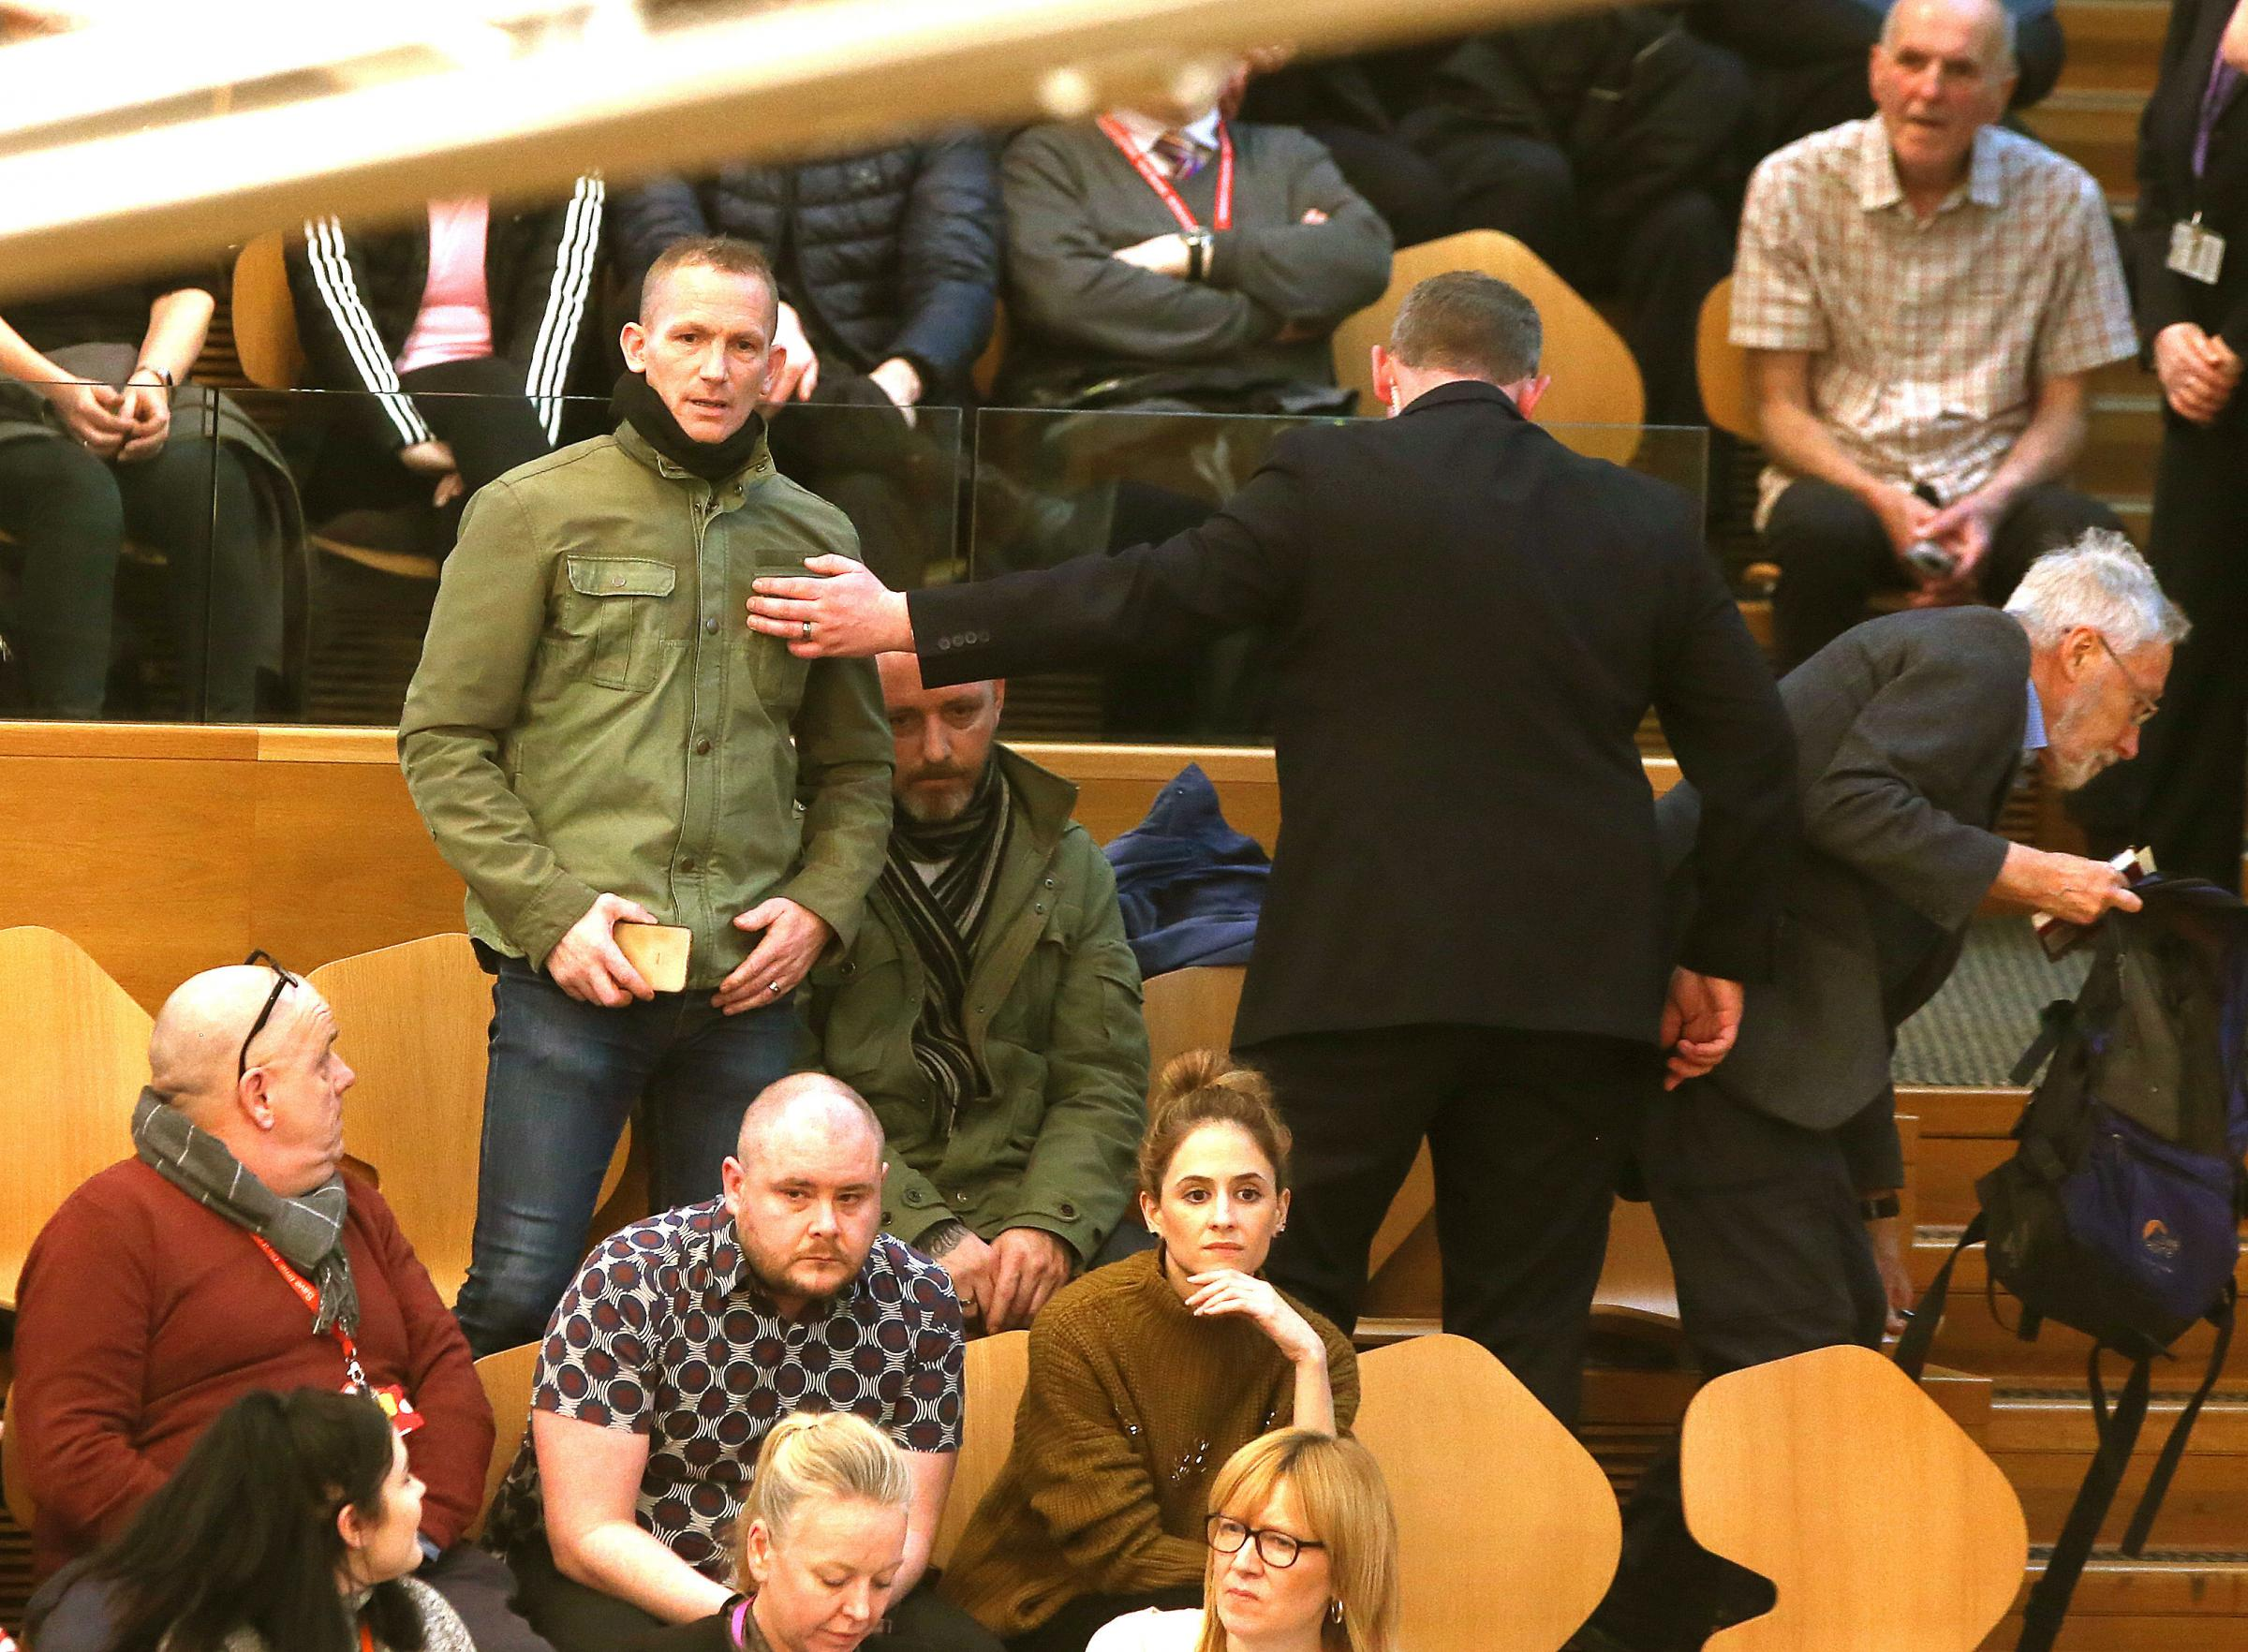 FMQs: Hecklers removed from Holyrood chamber linking SNP to IRA